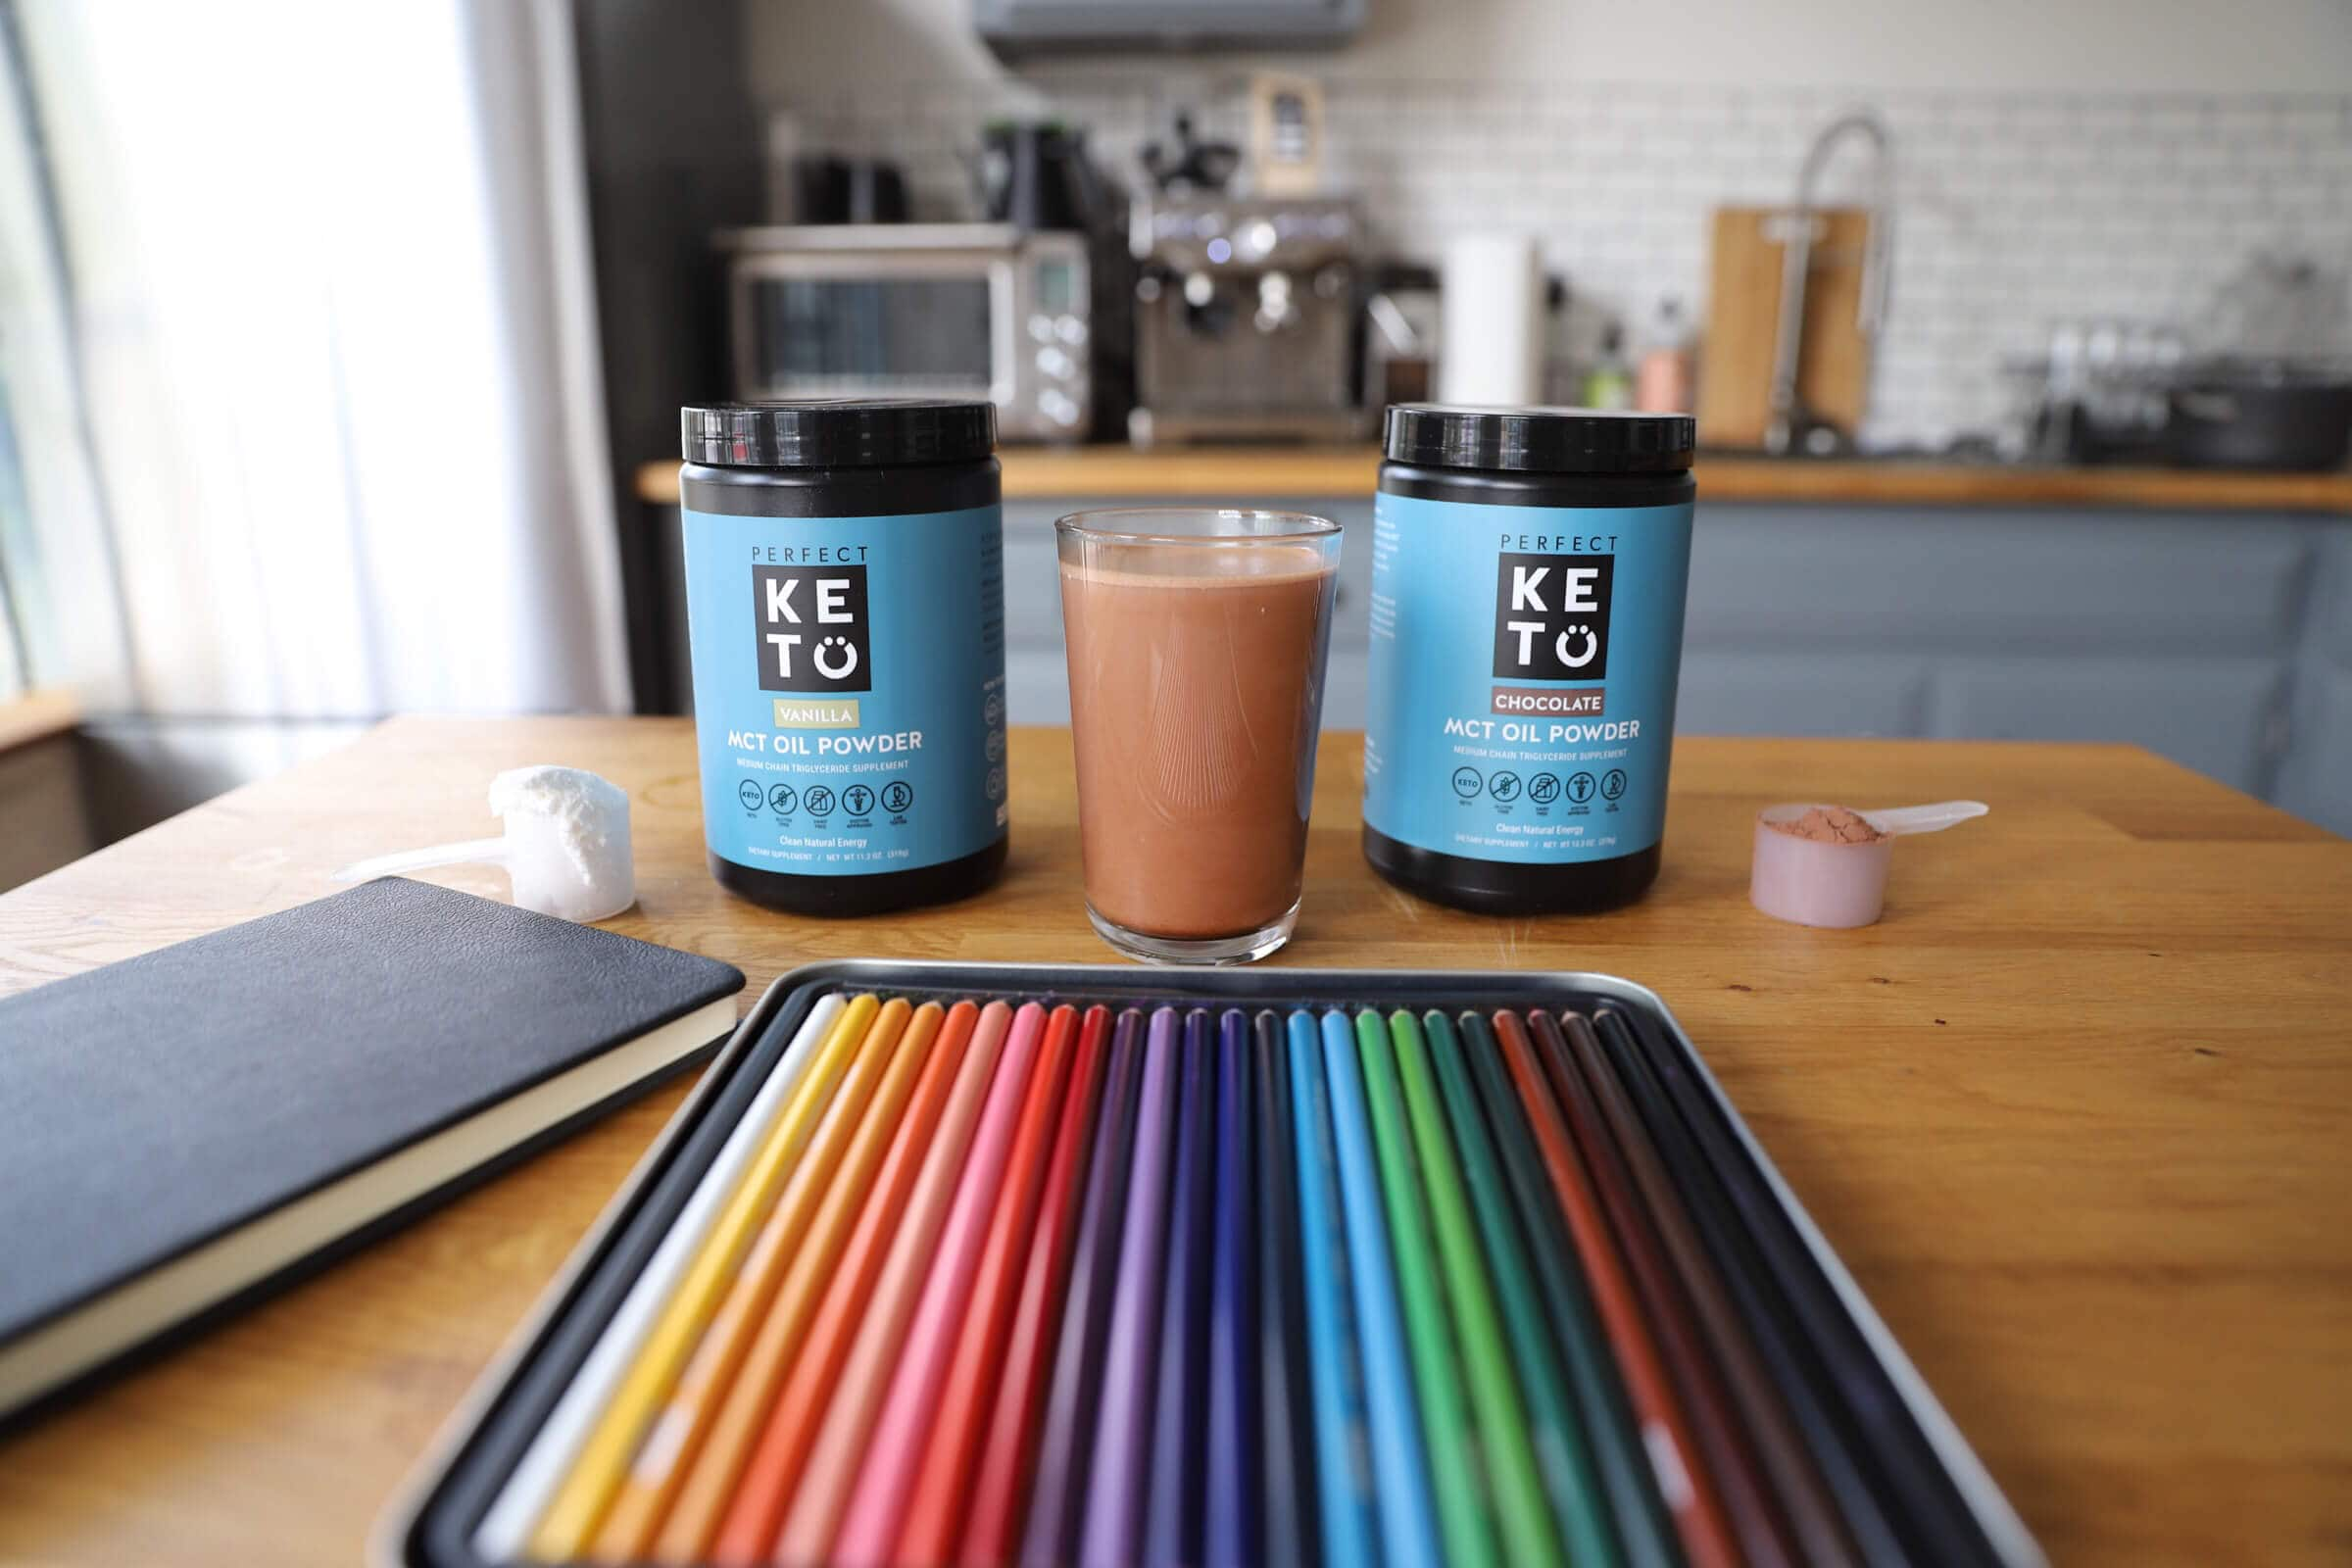 mct oil powder in containers on a kitchen table next to colored pencils